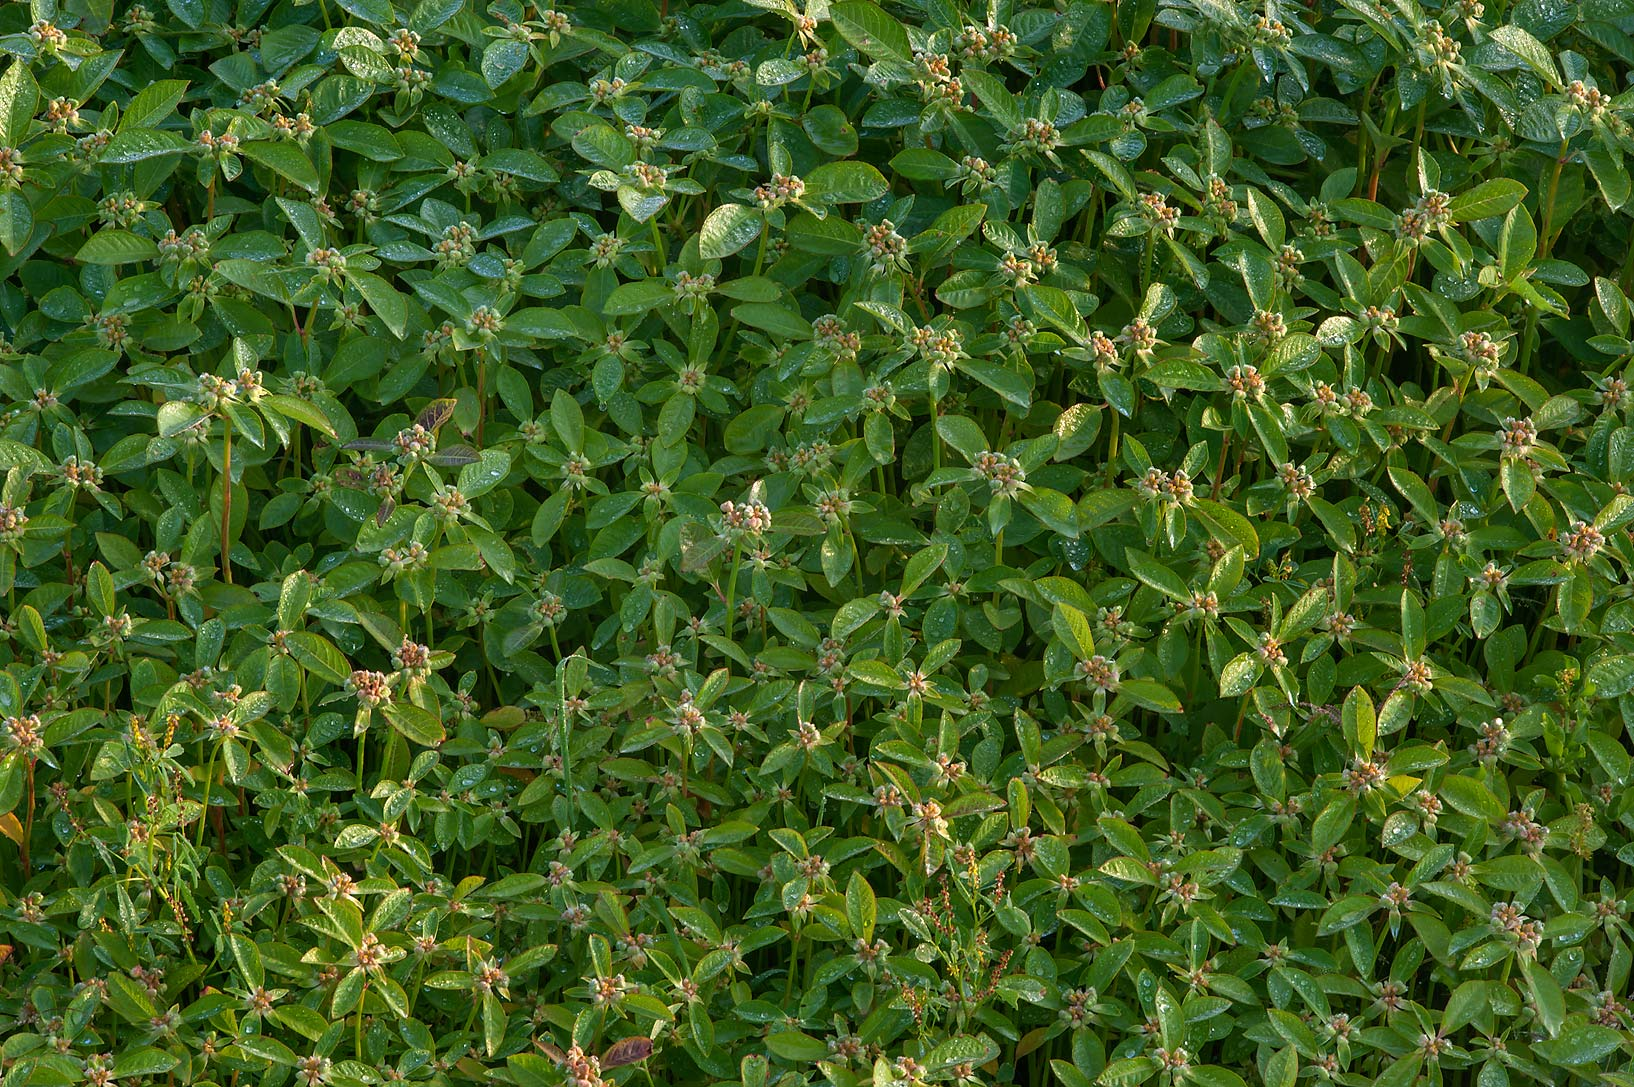 Carpet of desert spurge (summer poinsettia...in Irkhaya (Irkaya) Farms. Qatar